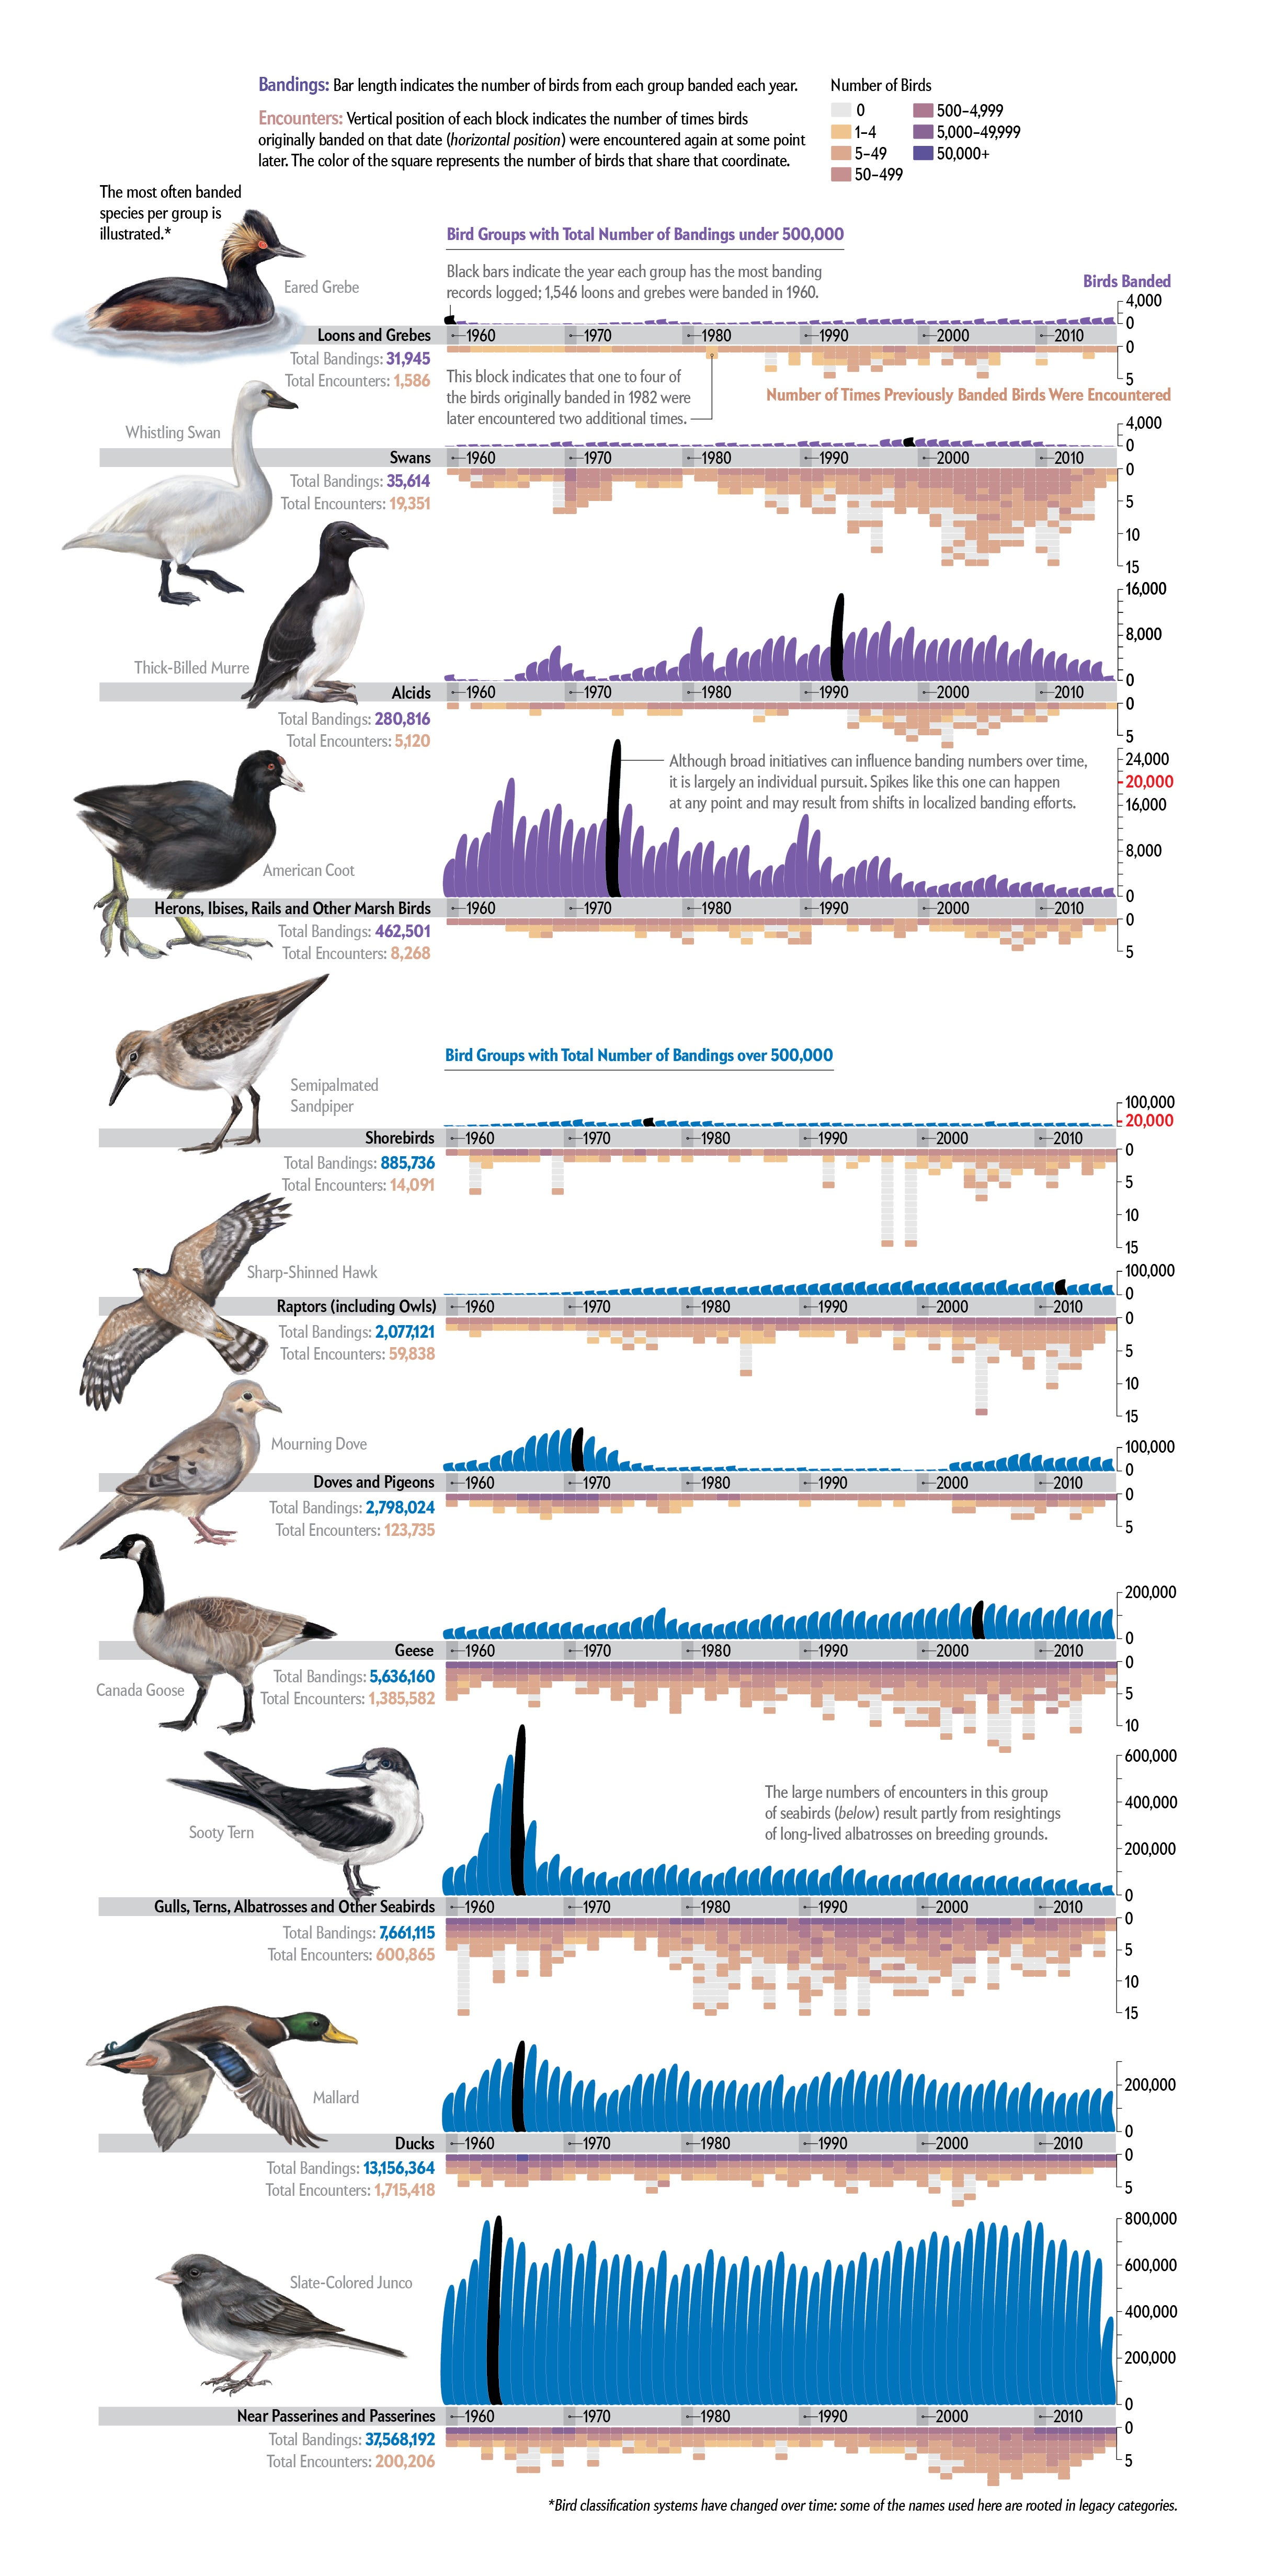 Charts show how many birds from various groups were banded each year and how often those birds were encountered later.